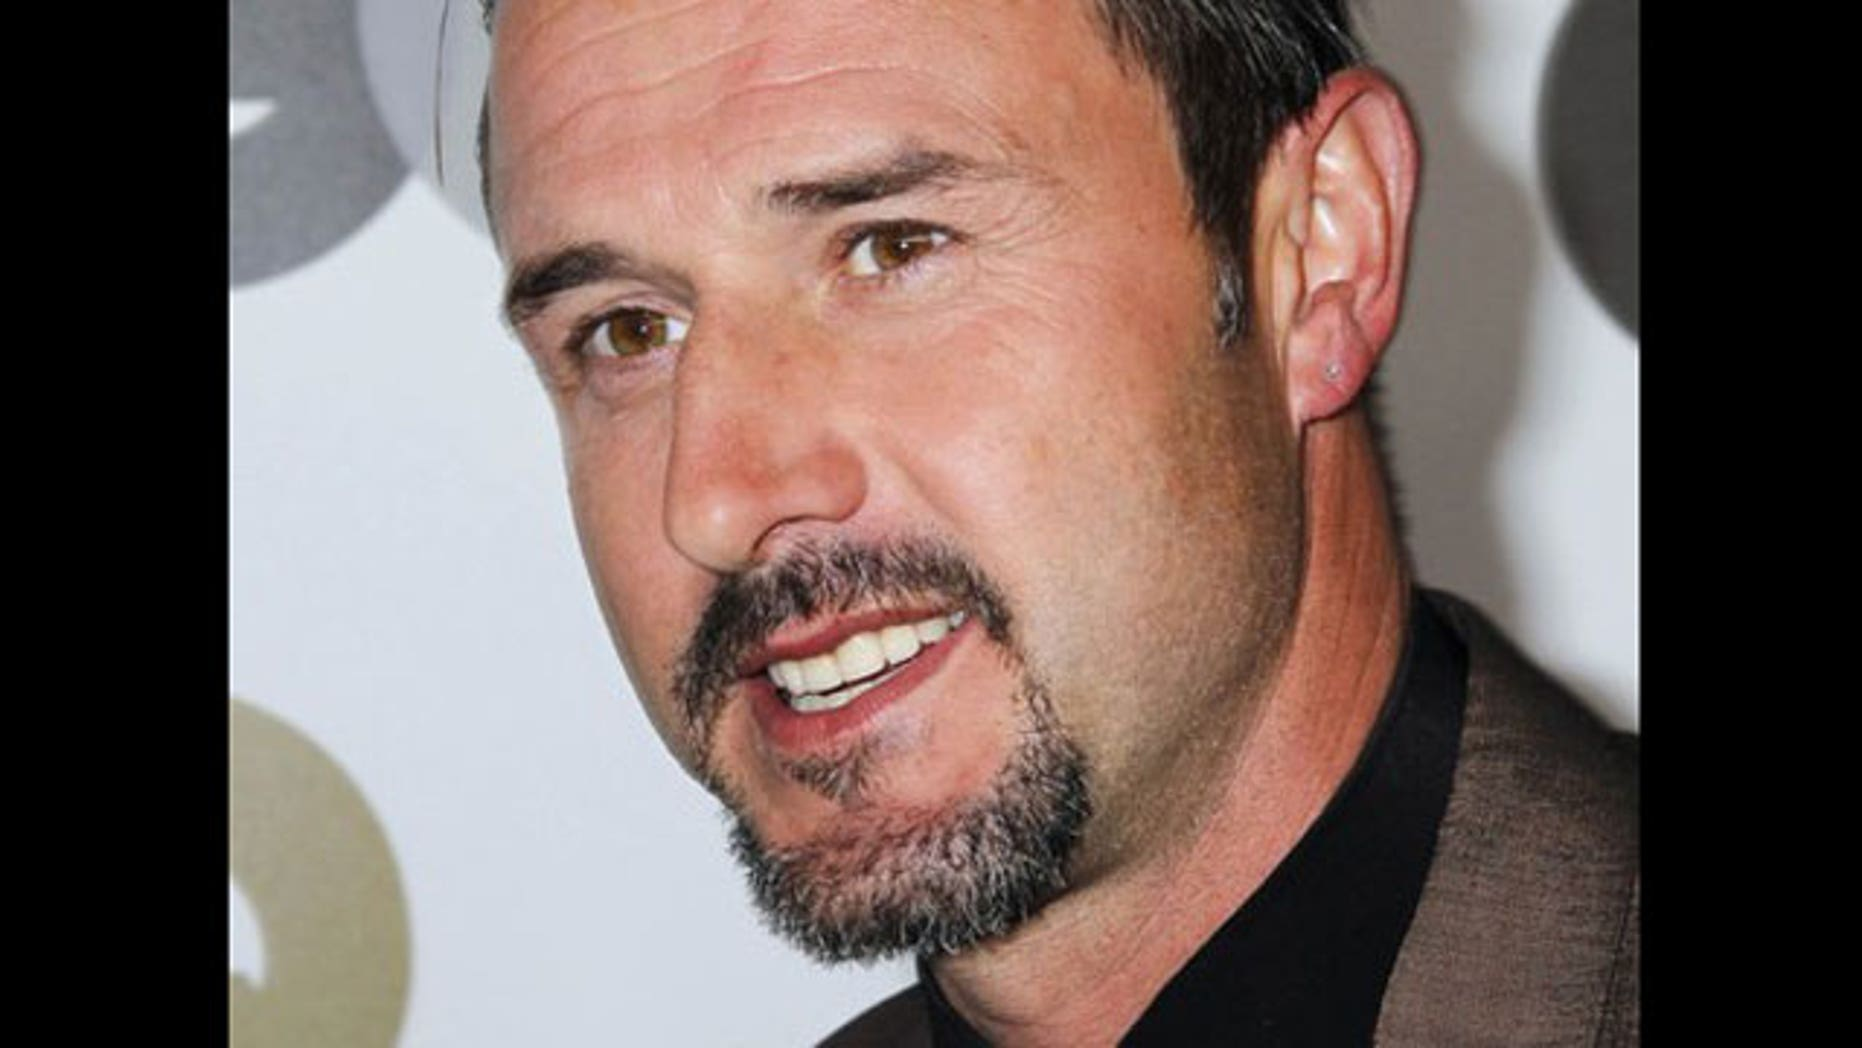 """""""Death Matches aren't my thing,"""" actor DavidArquette, 47, tweeted after Friday's bloody wrestling event in Los Angeles. (Reuters)"""